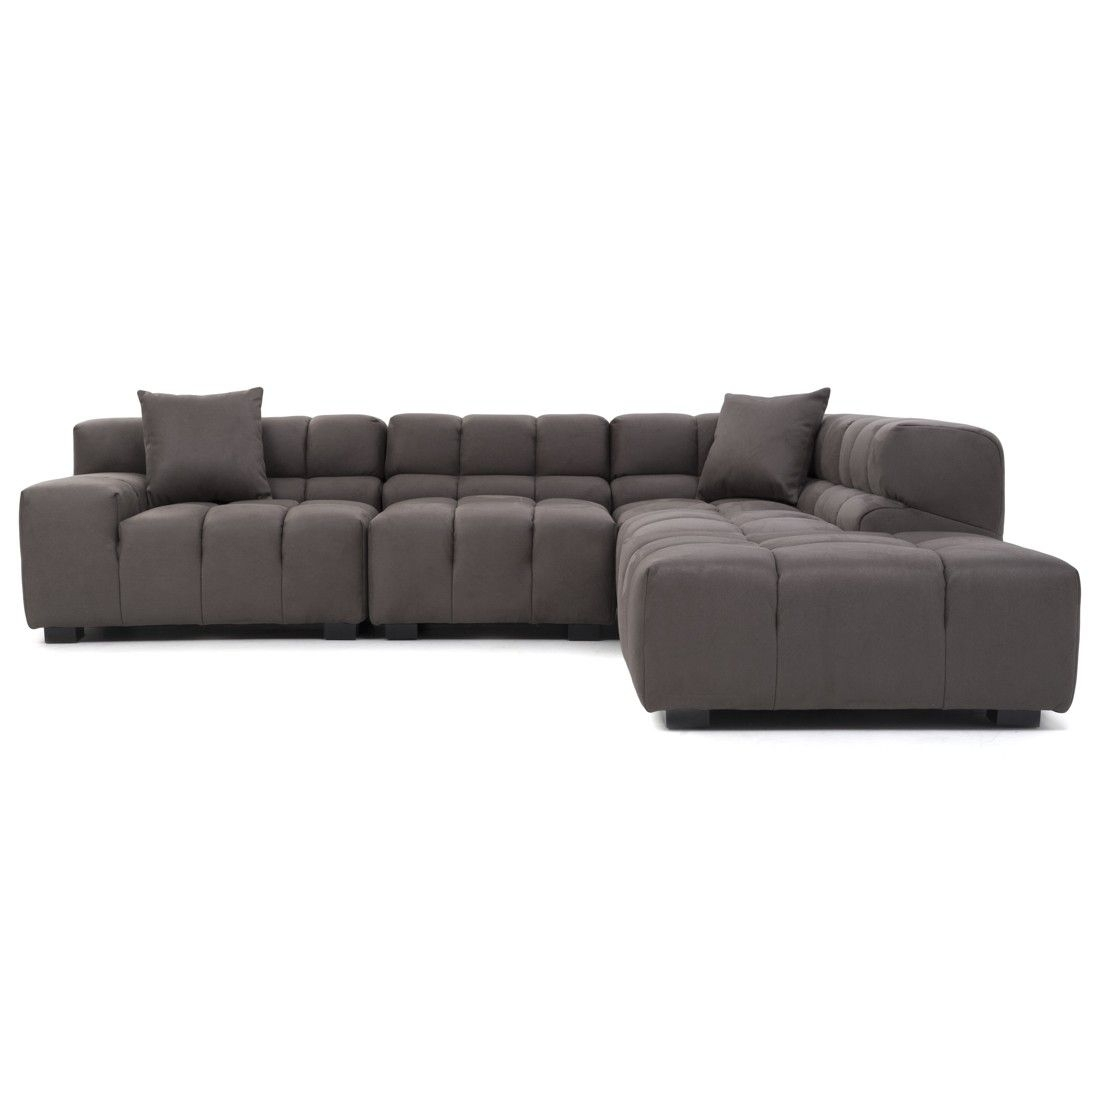 Sectionals – Norika | Mobilia | Sofa | Pinterest For Mobilia Sectional Sofas (View 10 of 10)